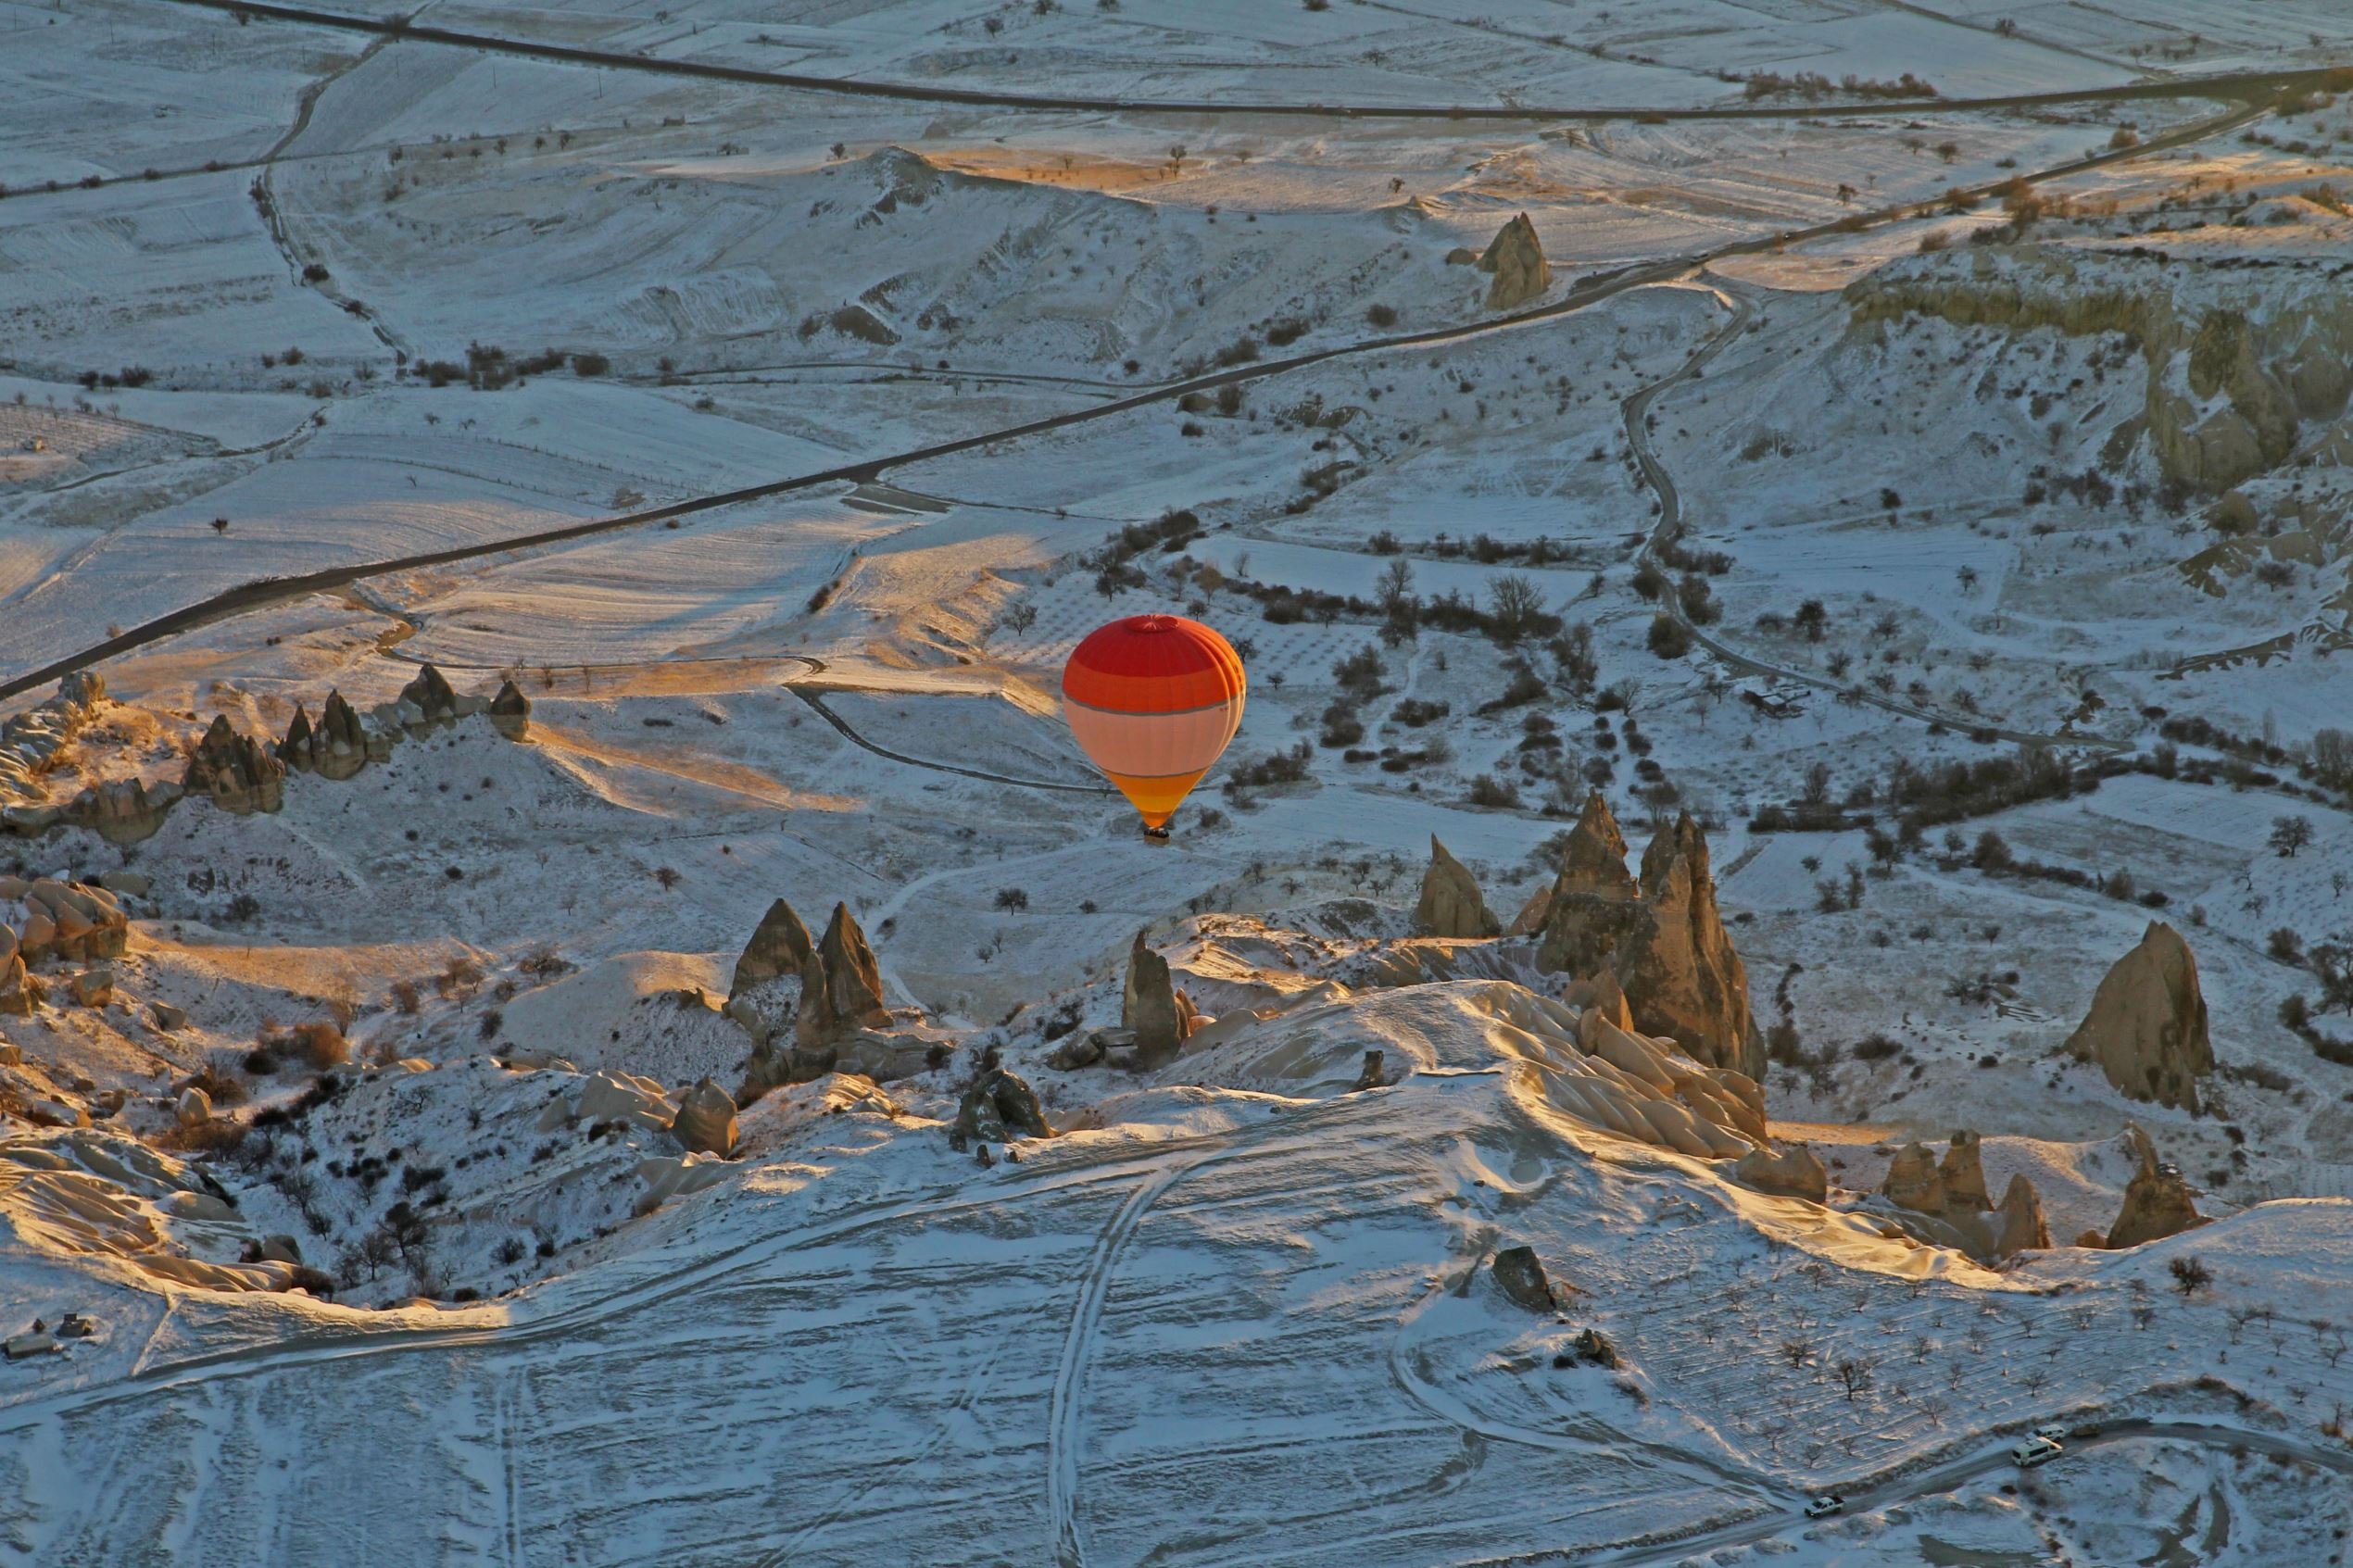 Слайд 13 из 86: NEVSEHIR, TURKEY - JANUARY 20: Hot air balloons fly over Cappadocia, a historical region in Central Anatolia, largely in Nevsehir Province, known for the fairy chimneys, during the winter season on January 20, 2016 in Nevsehir, Turkey. (Photo by Tevfik I